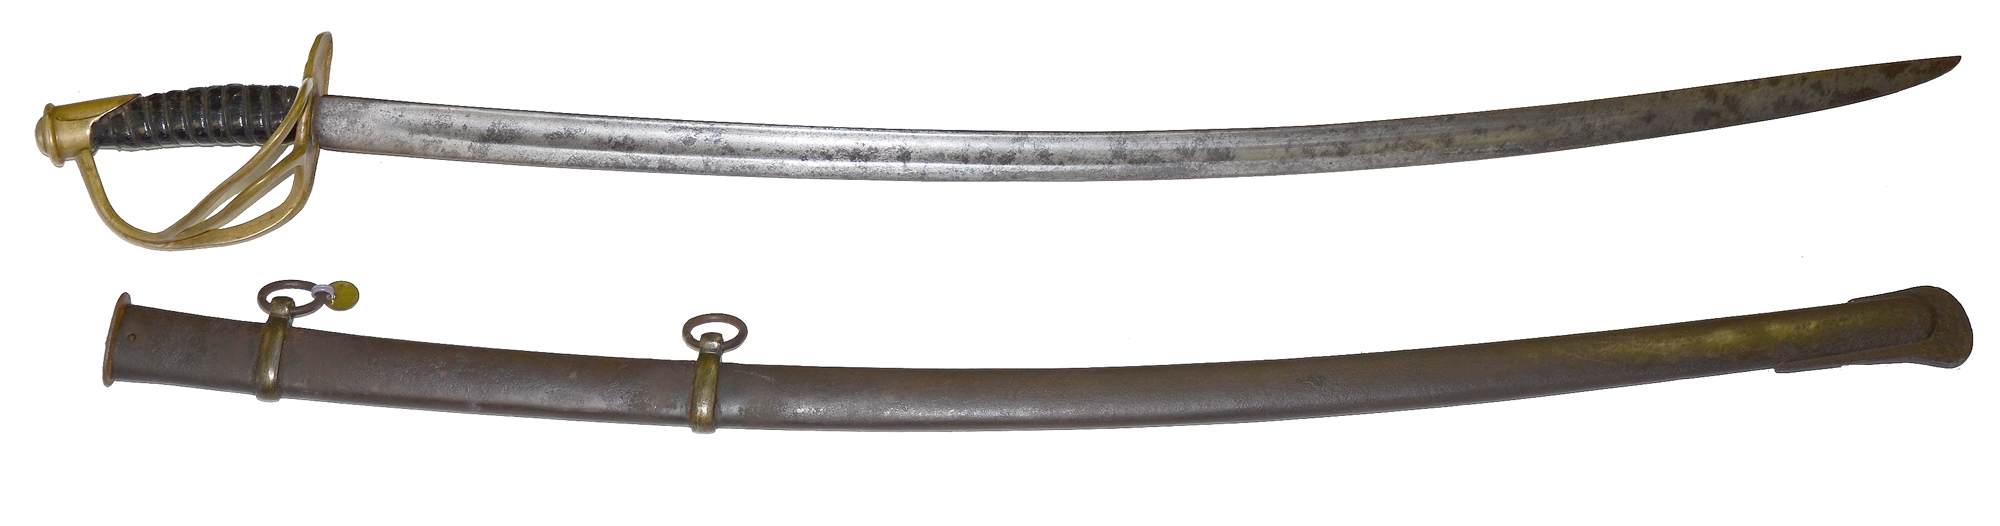 NICE EXAMPLE OF AN ORIGINAL UNMARKED CONFEDERATE CAVALRY SABER